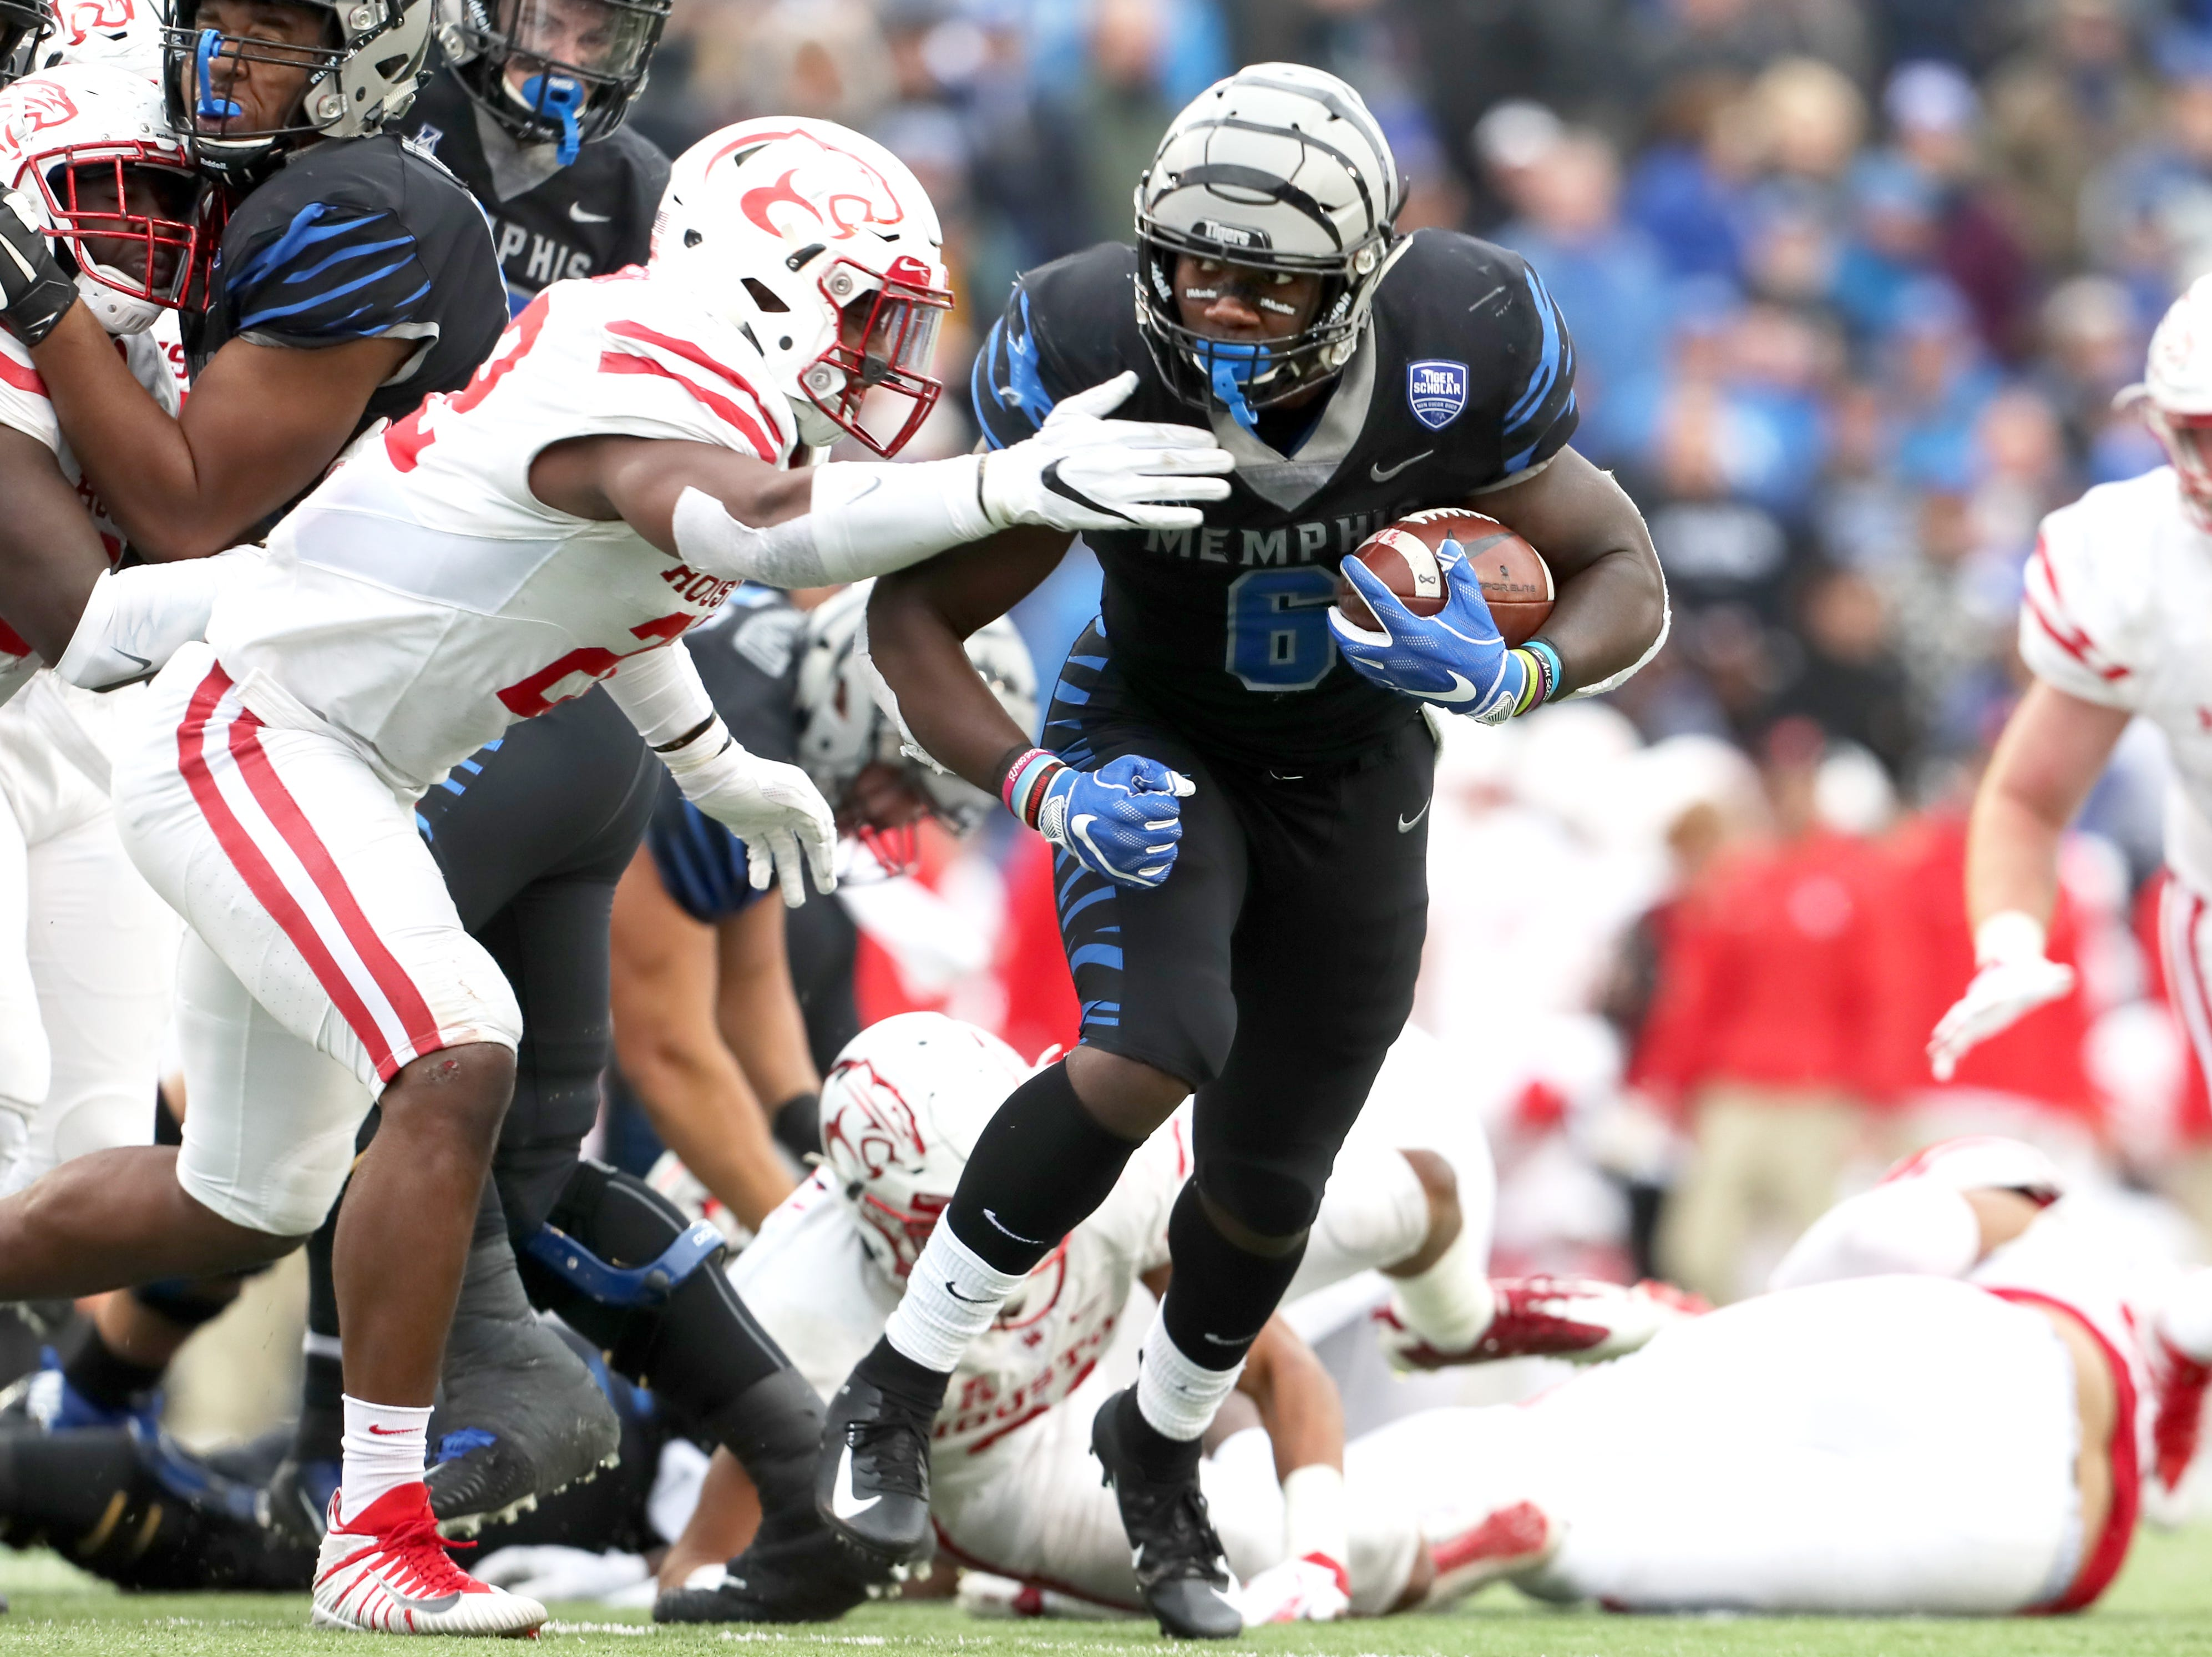 Memphis' Patrick Taylor Jr. runs the ball against the Houston Cougars as the Tigers win the AAC West title 52-31 at the Liberty Bowl on Friday, Nov. 23, 2018.